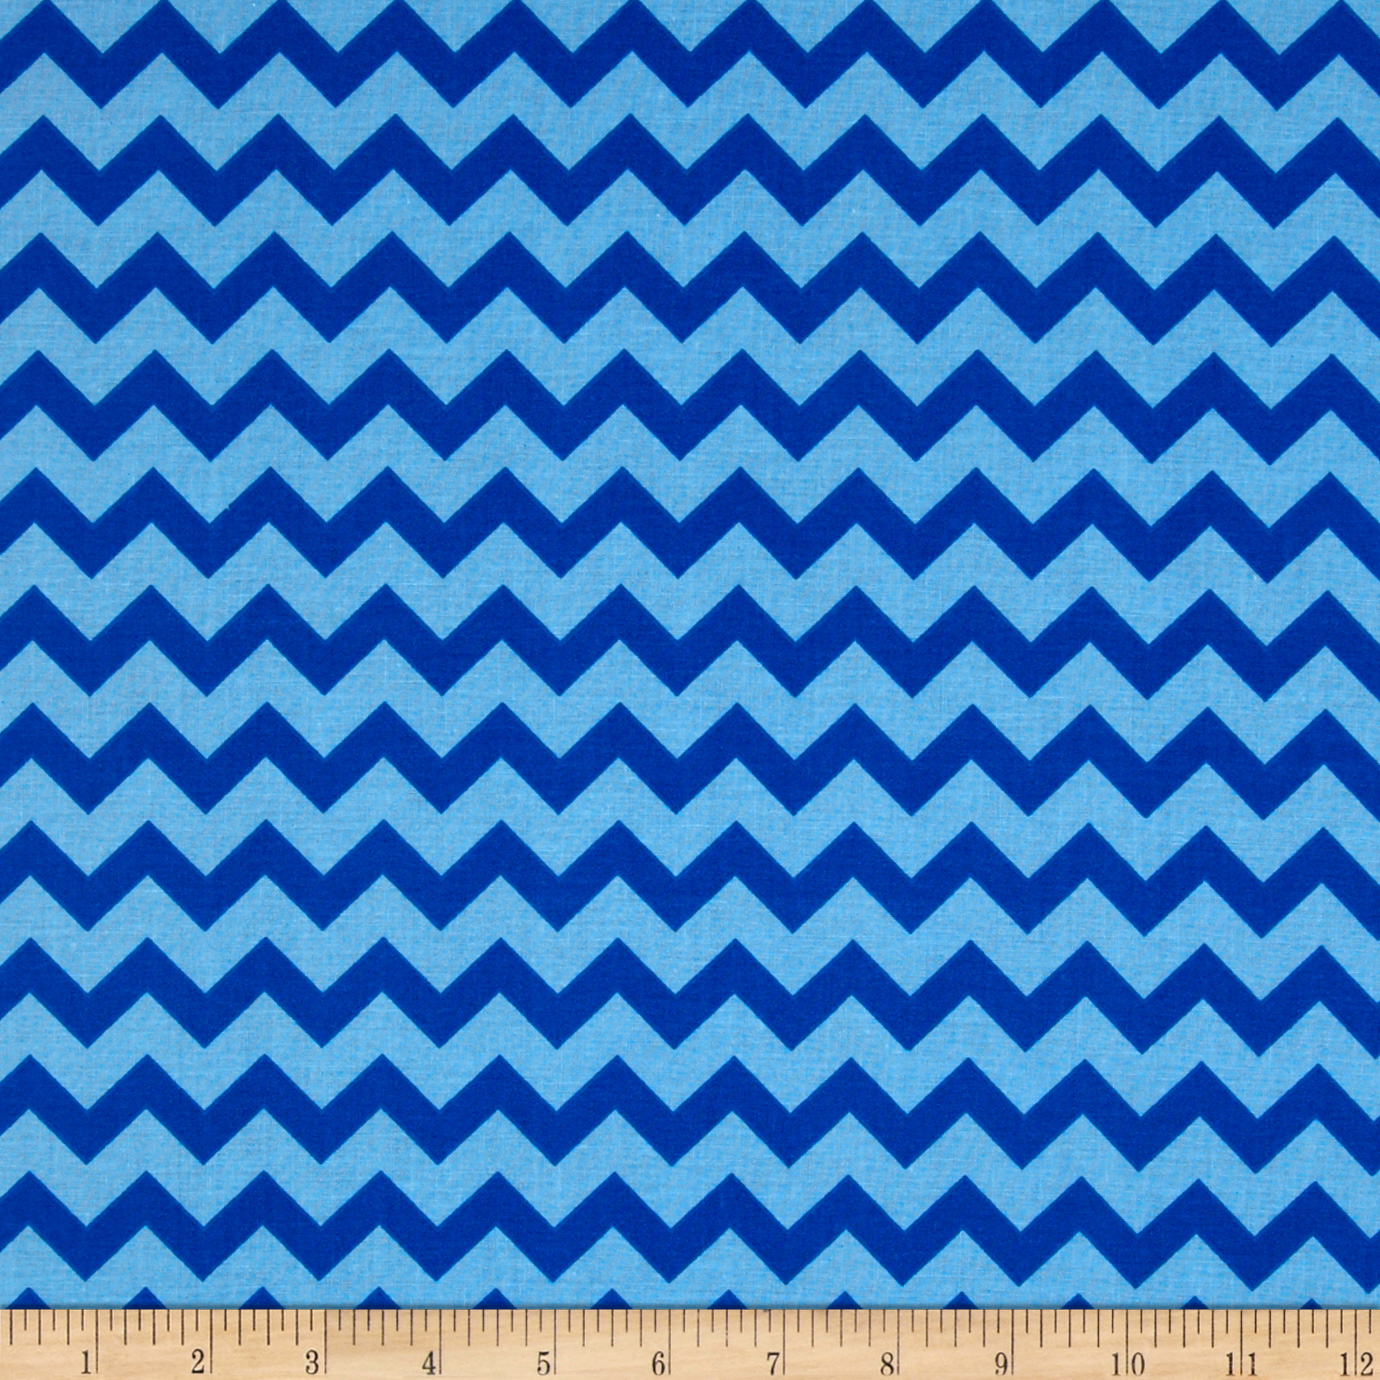 Chevron Tonal Royal/Blue Fabric